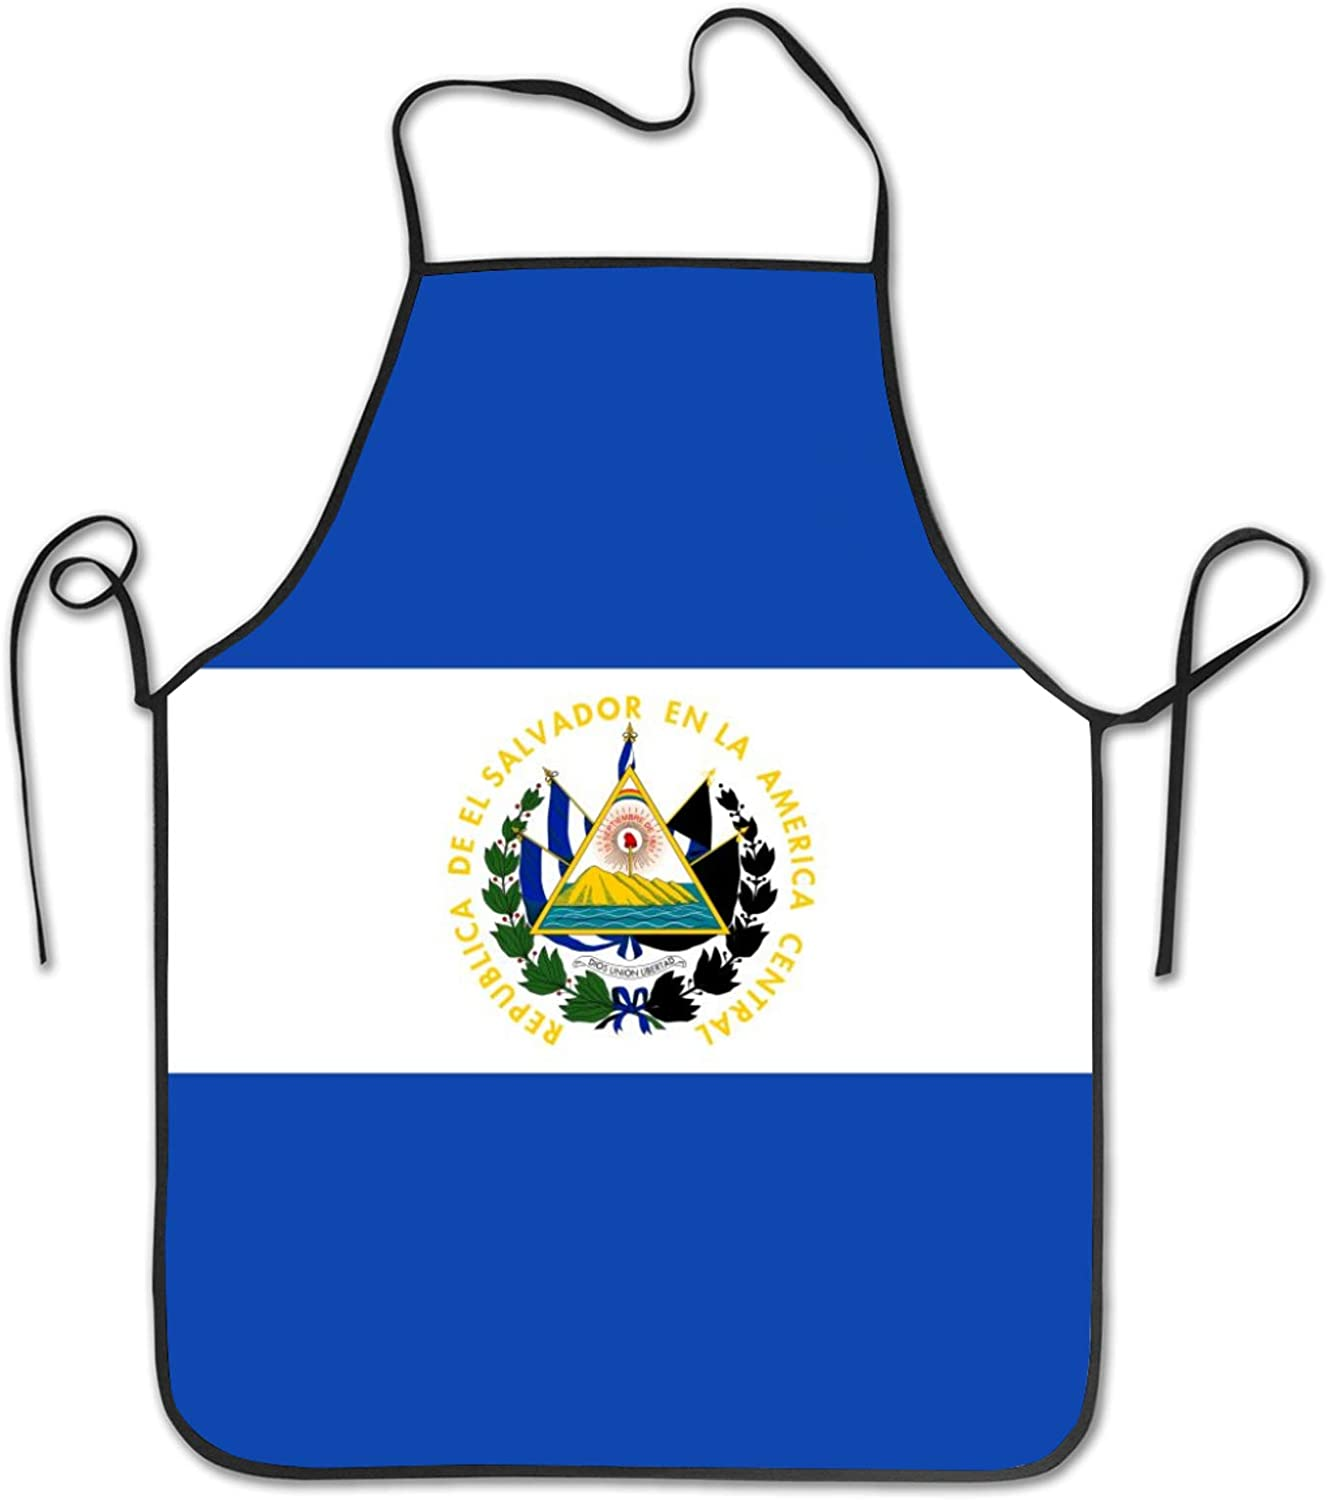 SWEET TANG Oil Proof Cooking Apron for Women Kitchen Waist Bib El Salvador Flag, Soft and Easy Clean Aprons Unique Holiday Decor Aprons for Crafting BBQ Drawing